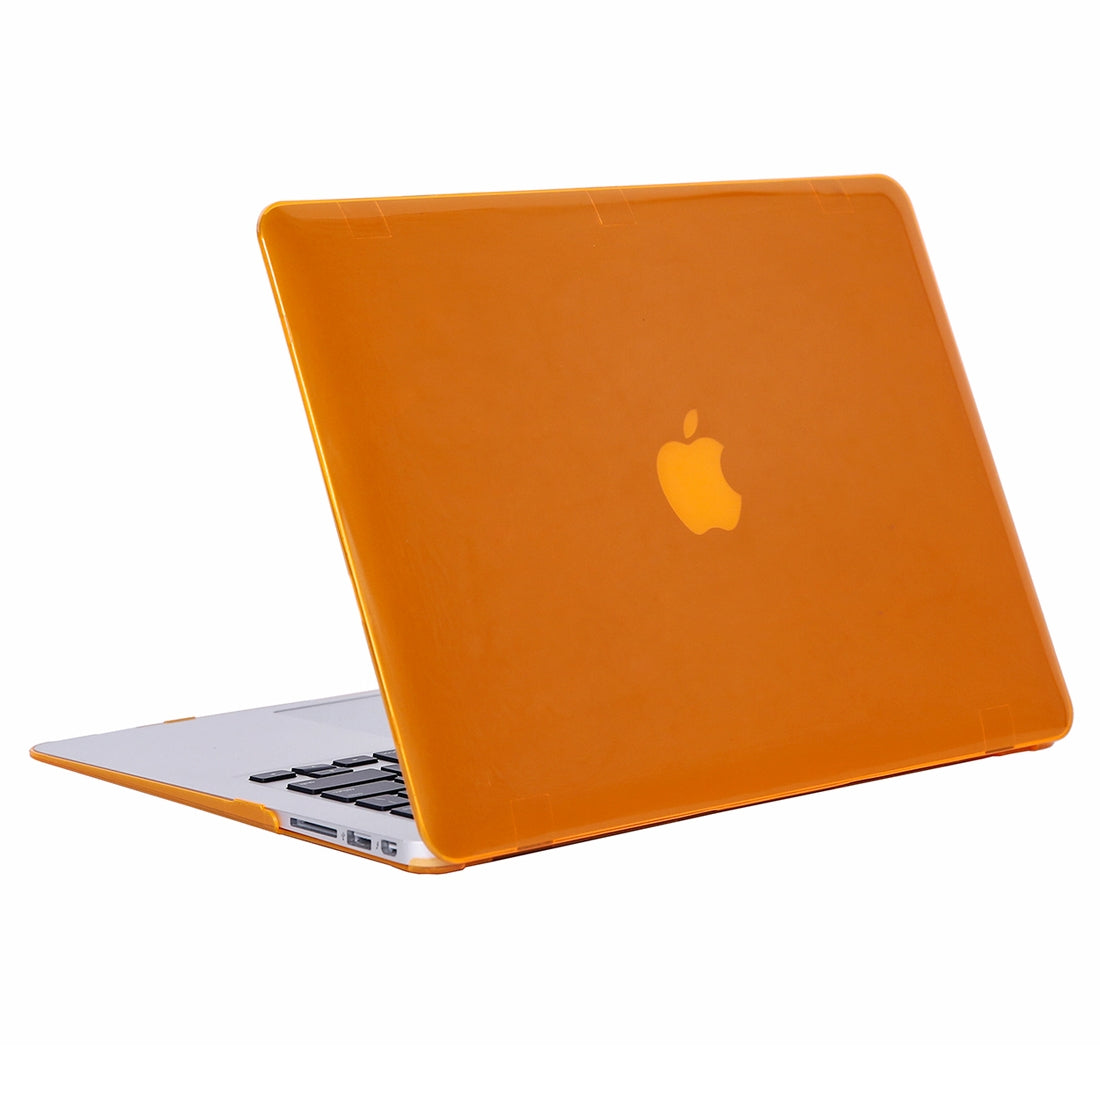 Laptop Crystal Hard Protective Case for MacBook Air 13.3 inch A1466 (2012 - 2017) / A1369 (2010 - 2012)(Orange)